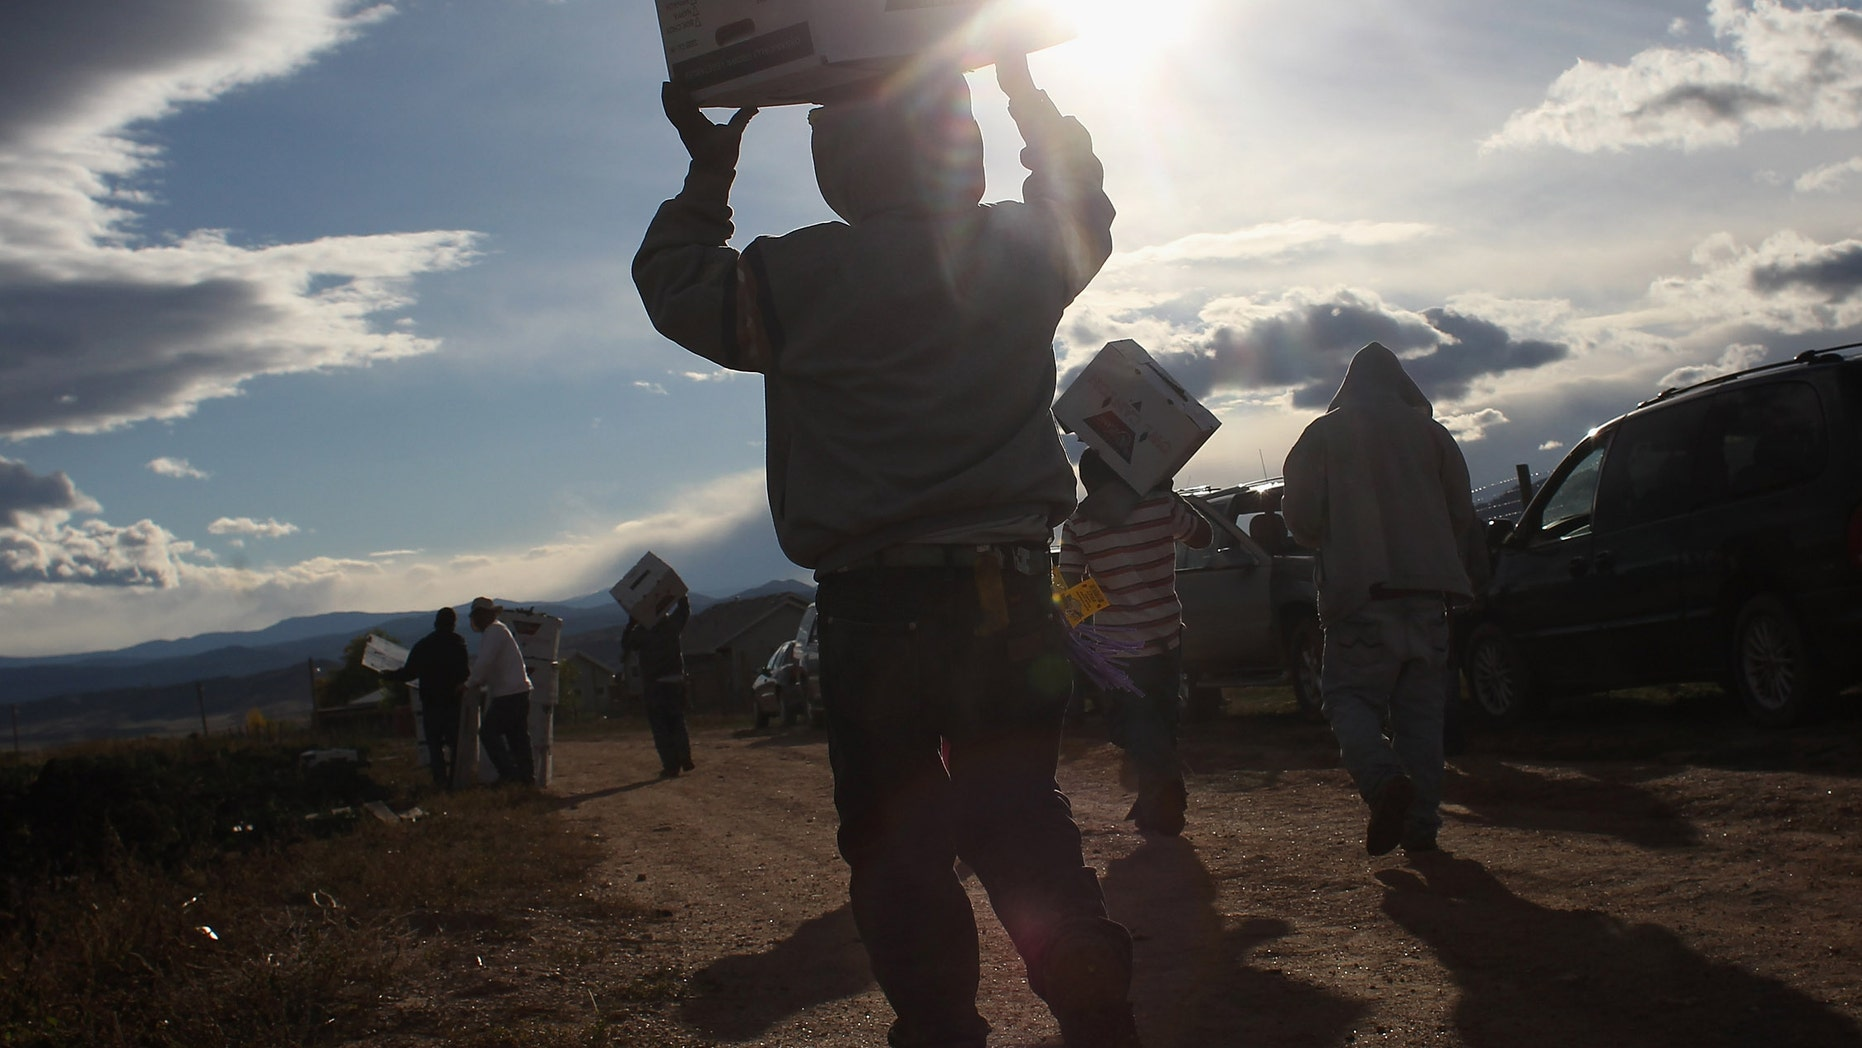 """WELLINGTON, CO - OCTOBER 11:  Mexican migrant workers carry boxes of organic kale during the fall harvest at Grant Family Farms on October 11, 2011 in Wellington, Colorado. Although demand for the farm's organic produce is high, Andy Grant said that his migrant labor force, mostly from Mexico, is sharply down this year and that he'll be unable to harvest up to a third of his fall crops, leaving vegetables in the fields to rot. He said that stricter U.S. immigration policies nationwide have created a """"climate of fear"""" in the immigrant community and many workers have either gone back to Mexico or have been deported. Although Grant requires proof of legal immigration status from his employees, undocumented migrant workers can easily obtain falsified permits in order to work throughout the U.S. Many farmers nationwide say they have found it nearly impossible to hire American citizens for seasonal labor-intensive farm work. (Photo by John Moore/Getty Images)"""